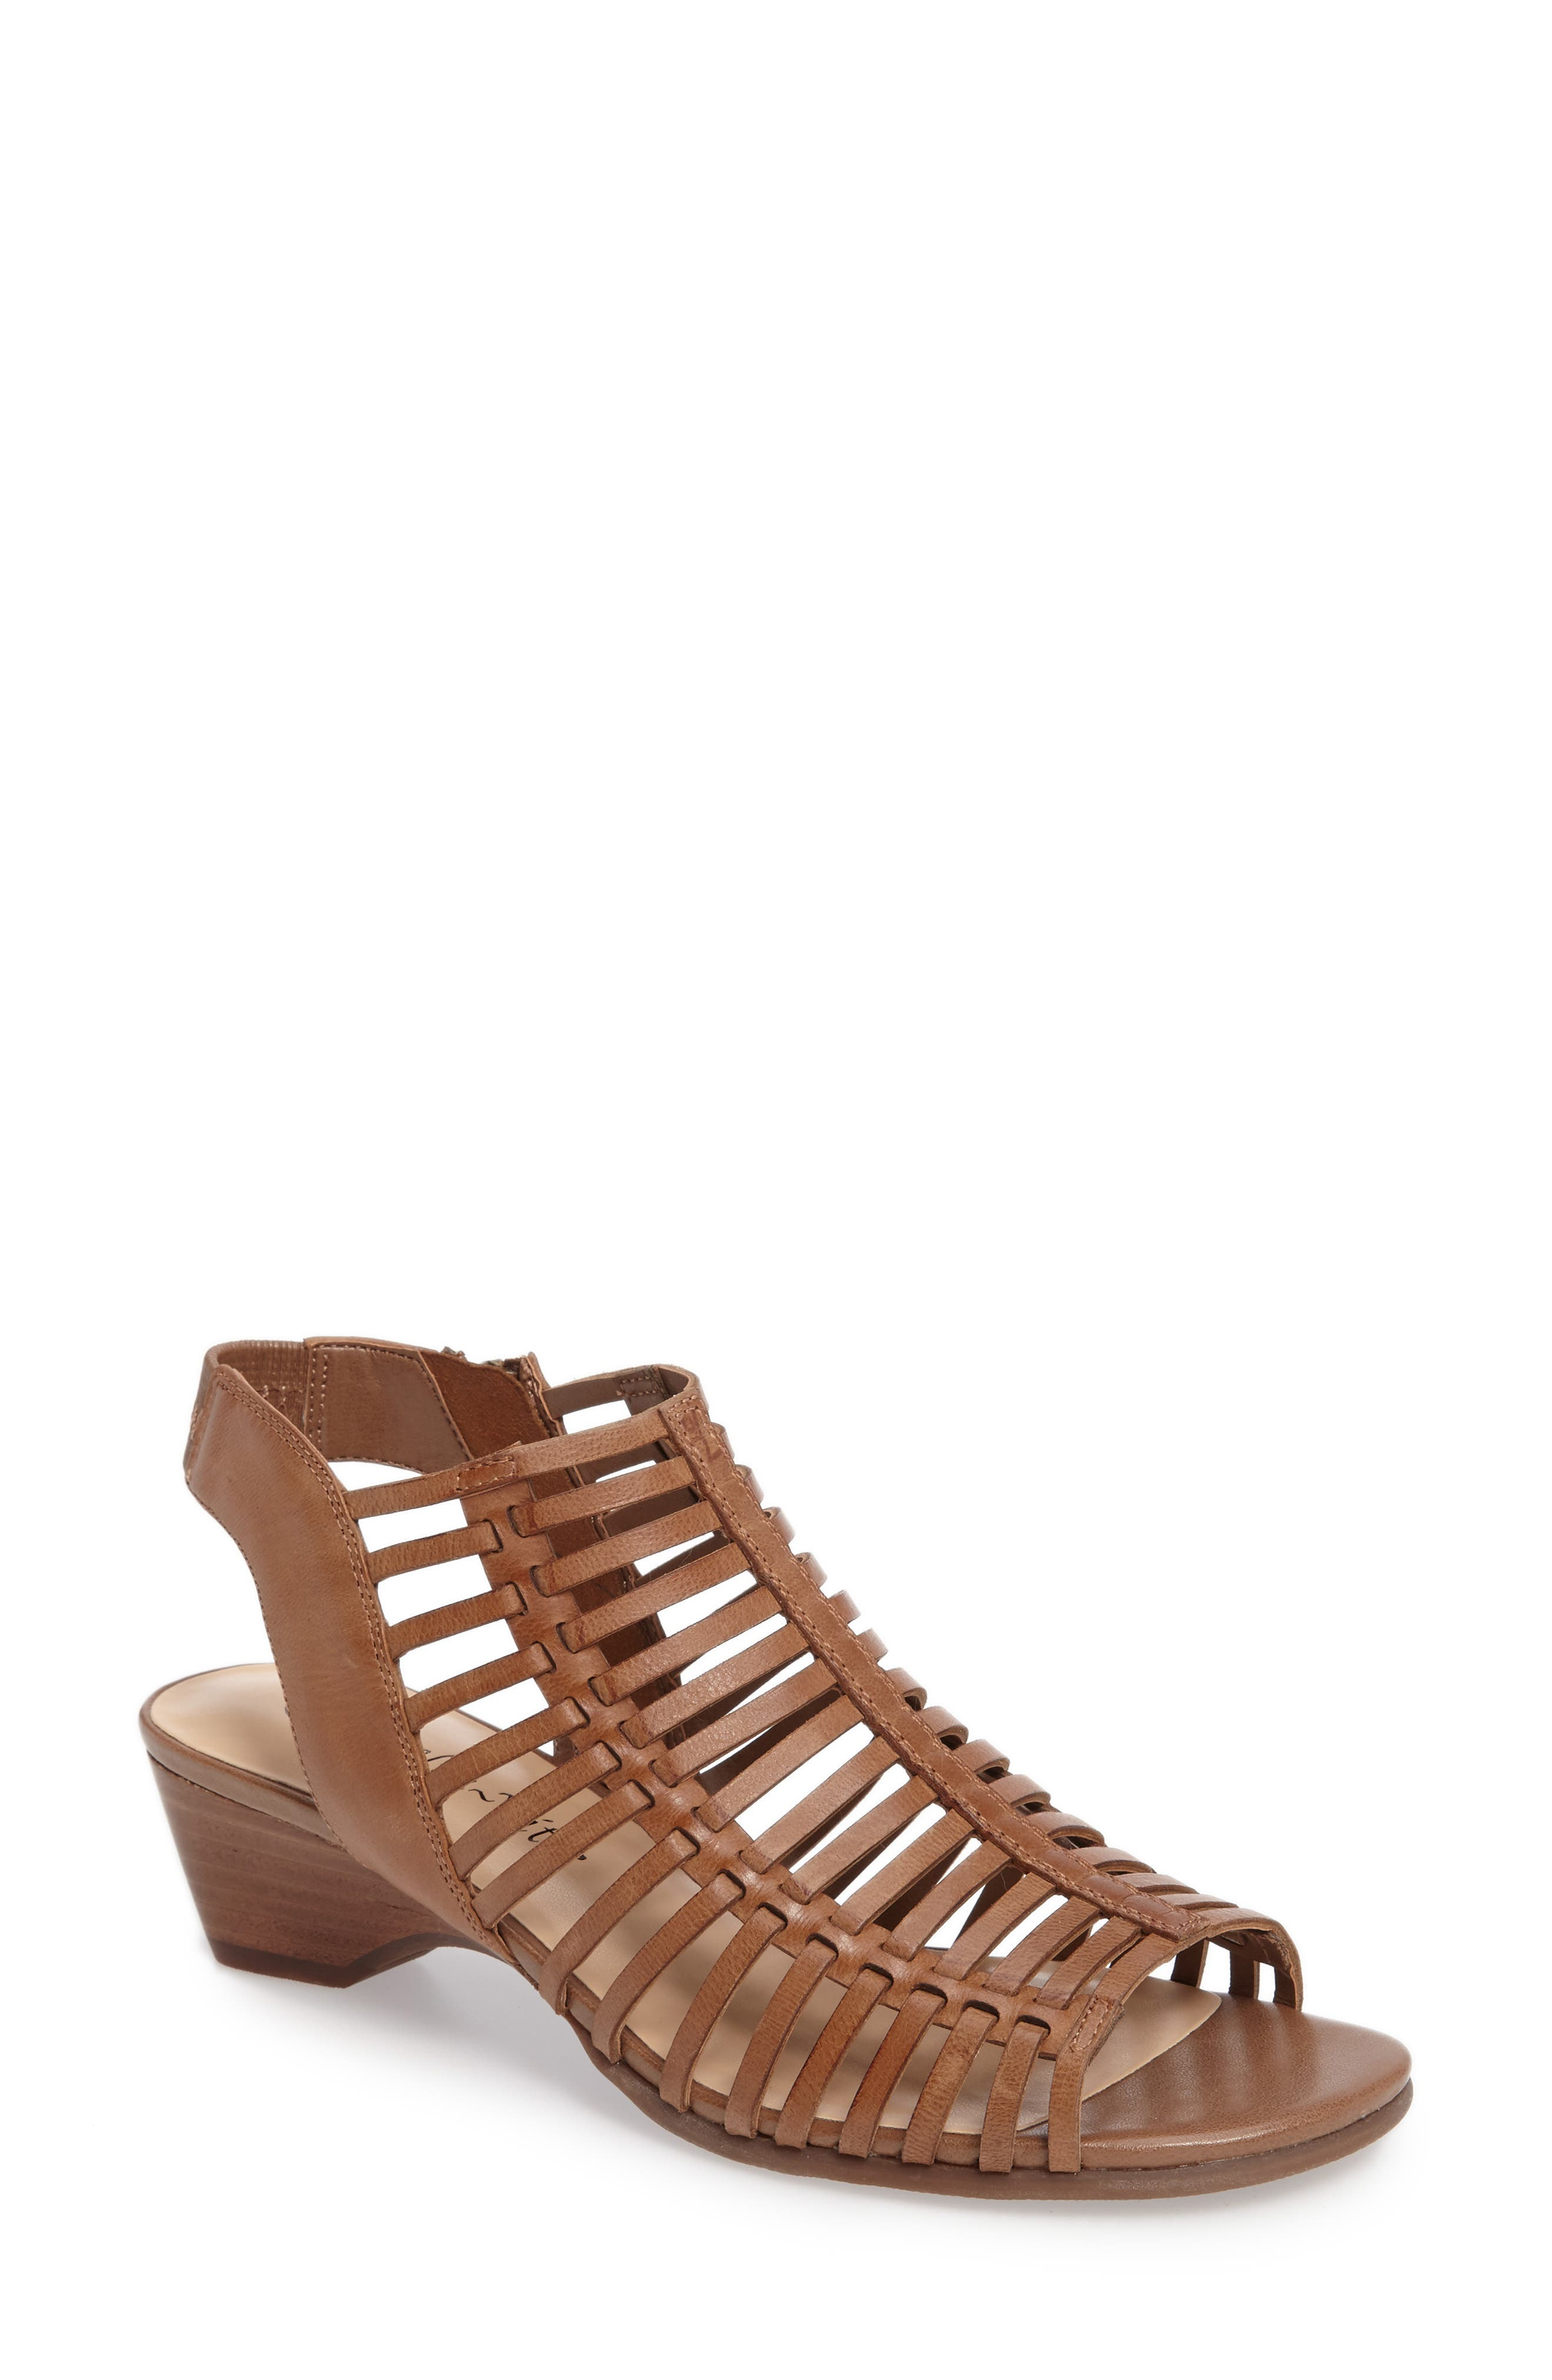 BELLA VITA Pacey Cage Sandal, Main, color, CAMEL LEATHER